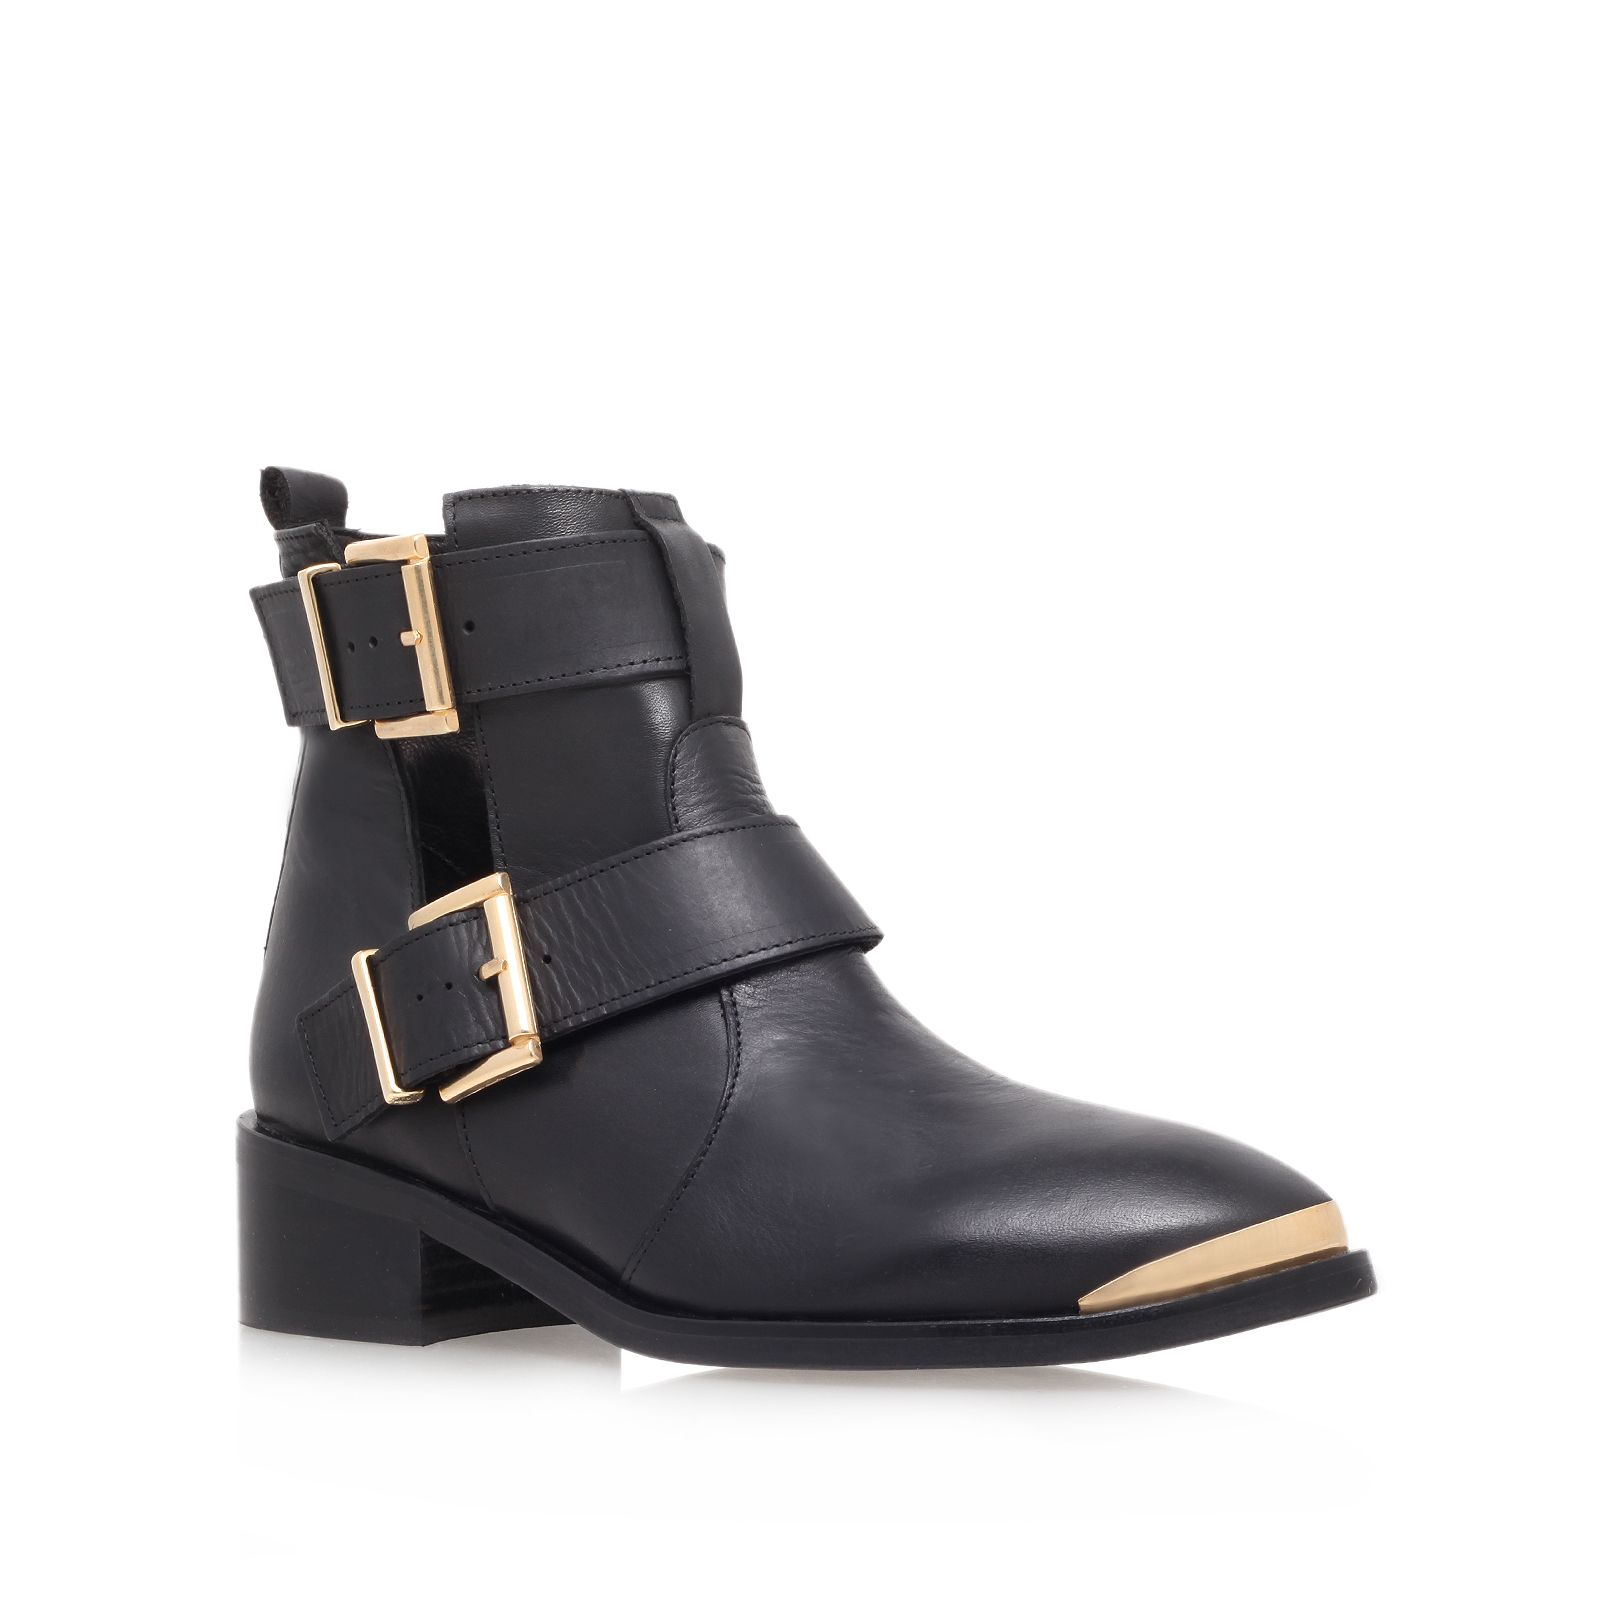 Saxon low heel ankle boots